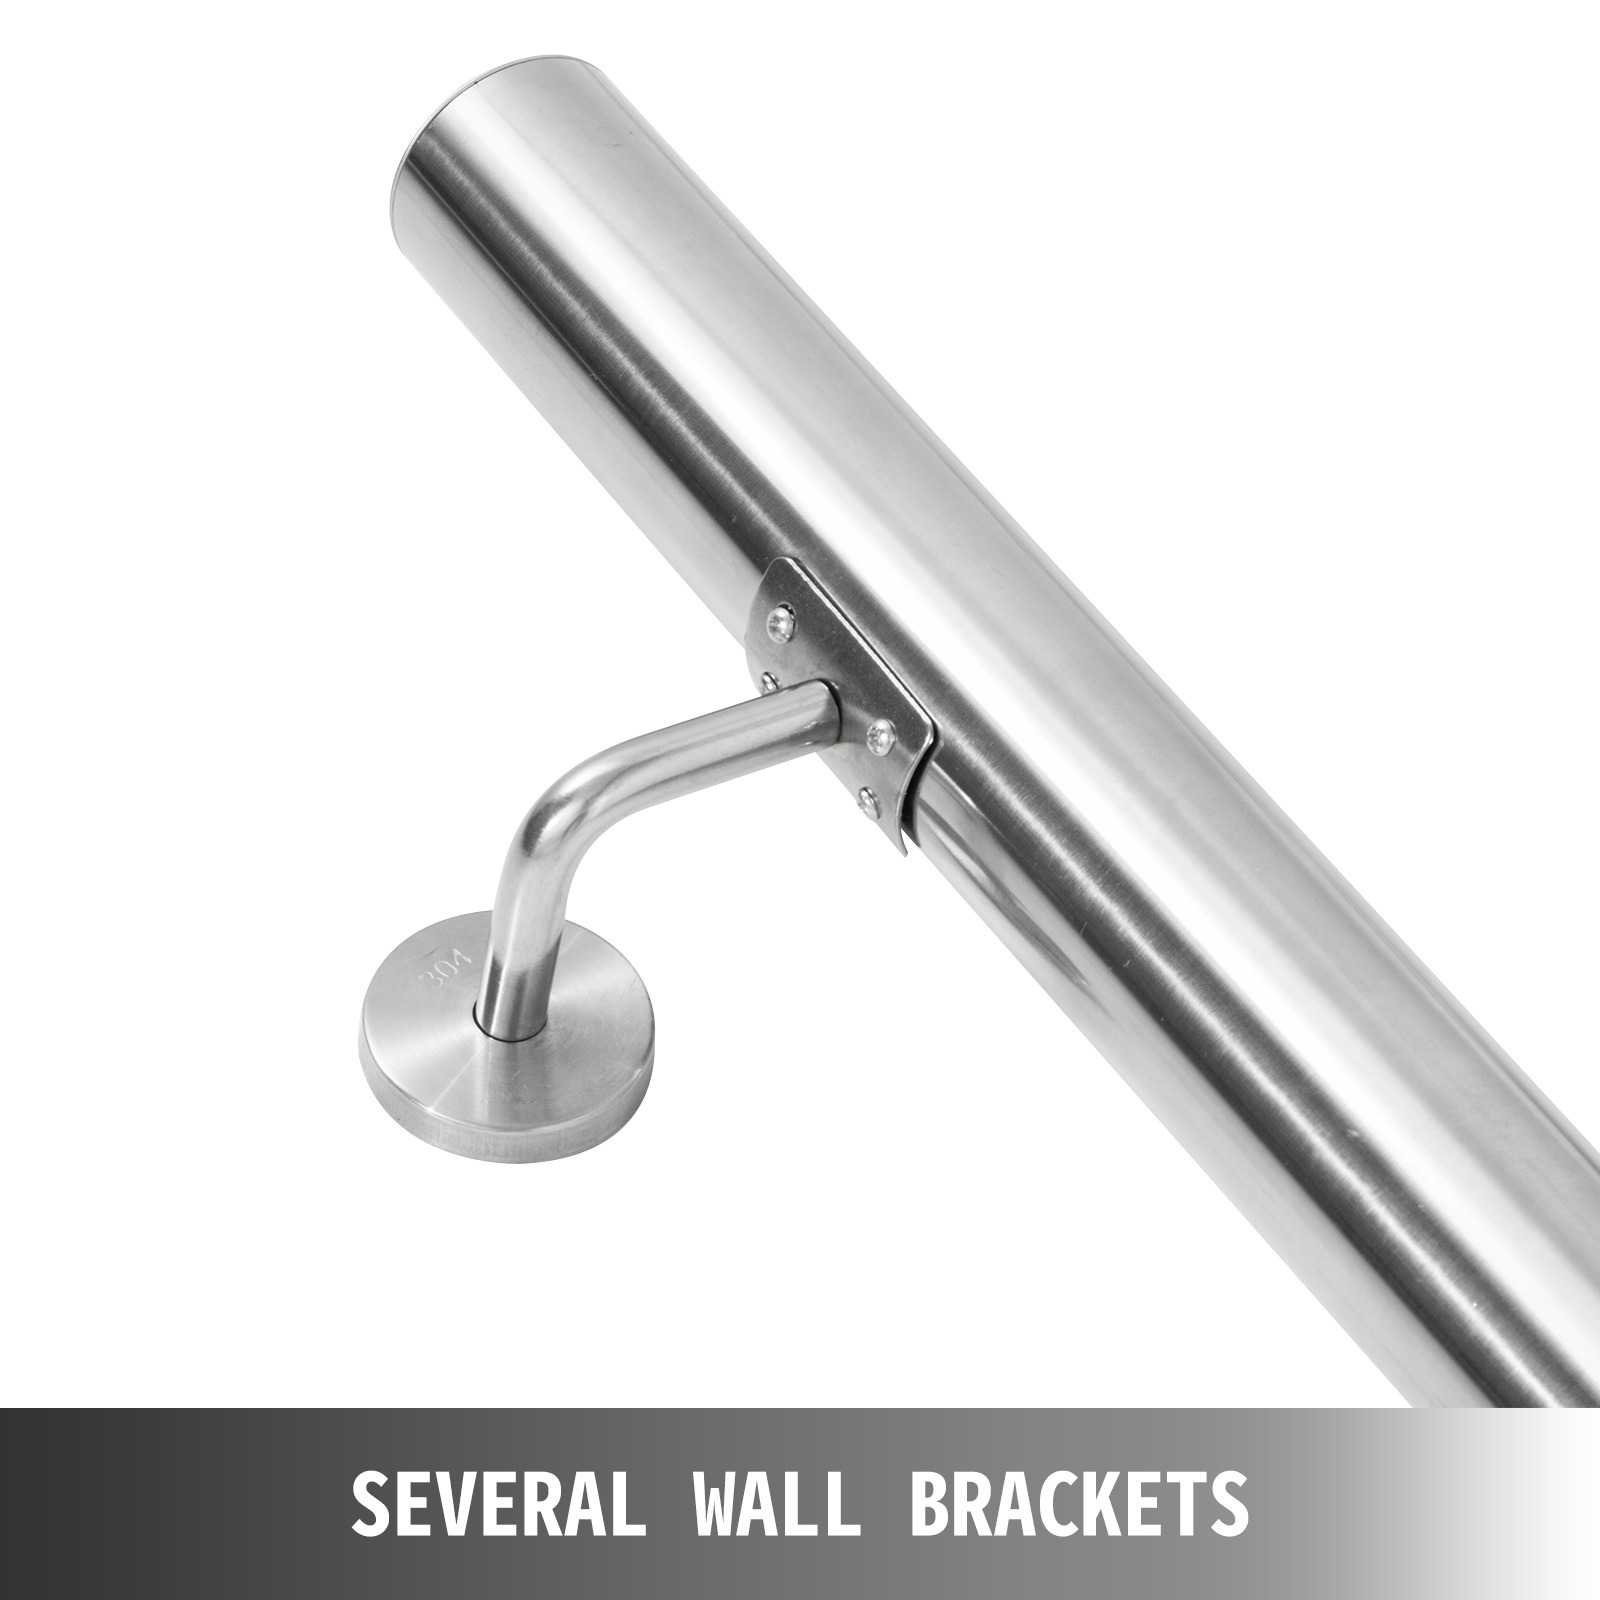 Stair-Handrail-Stair-Rail-3-10ft-Stainless-Steel-Handrail-for-Stairs-200lbs-Load thumbnail 63